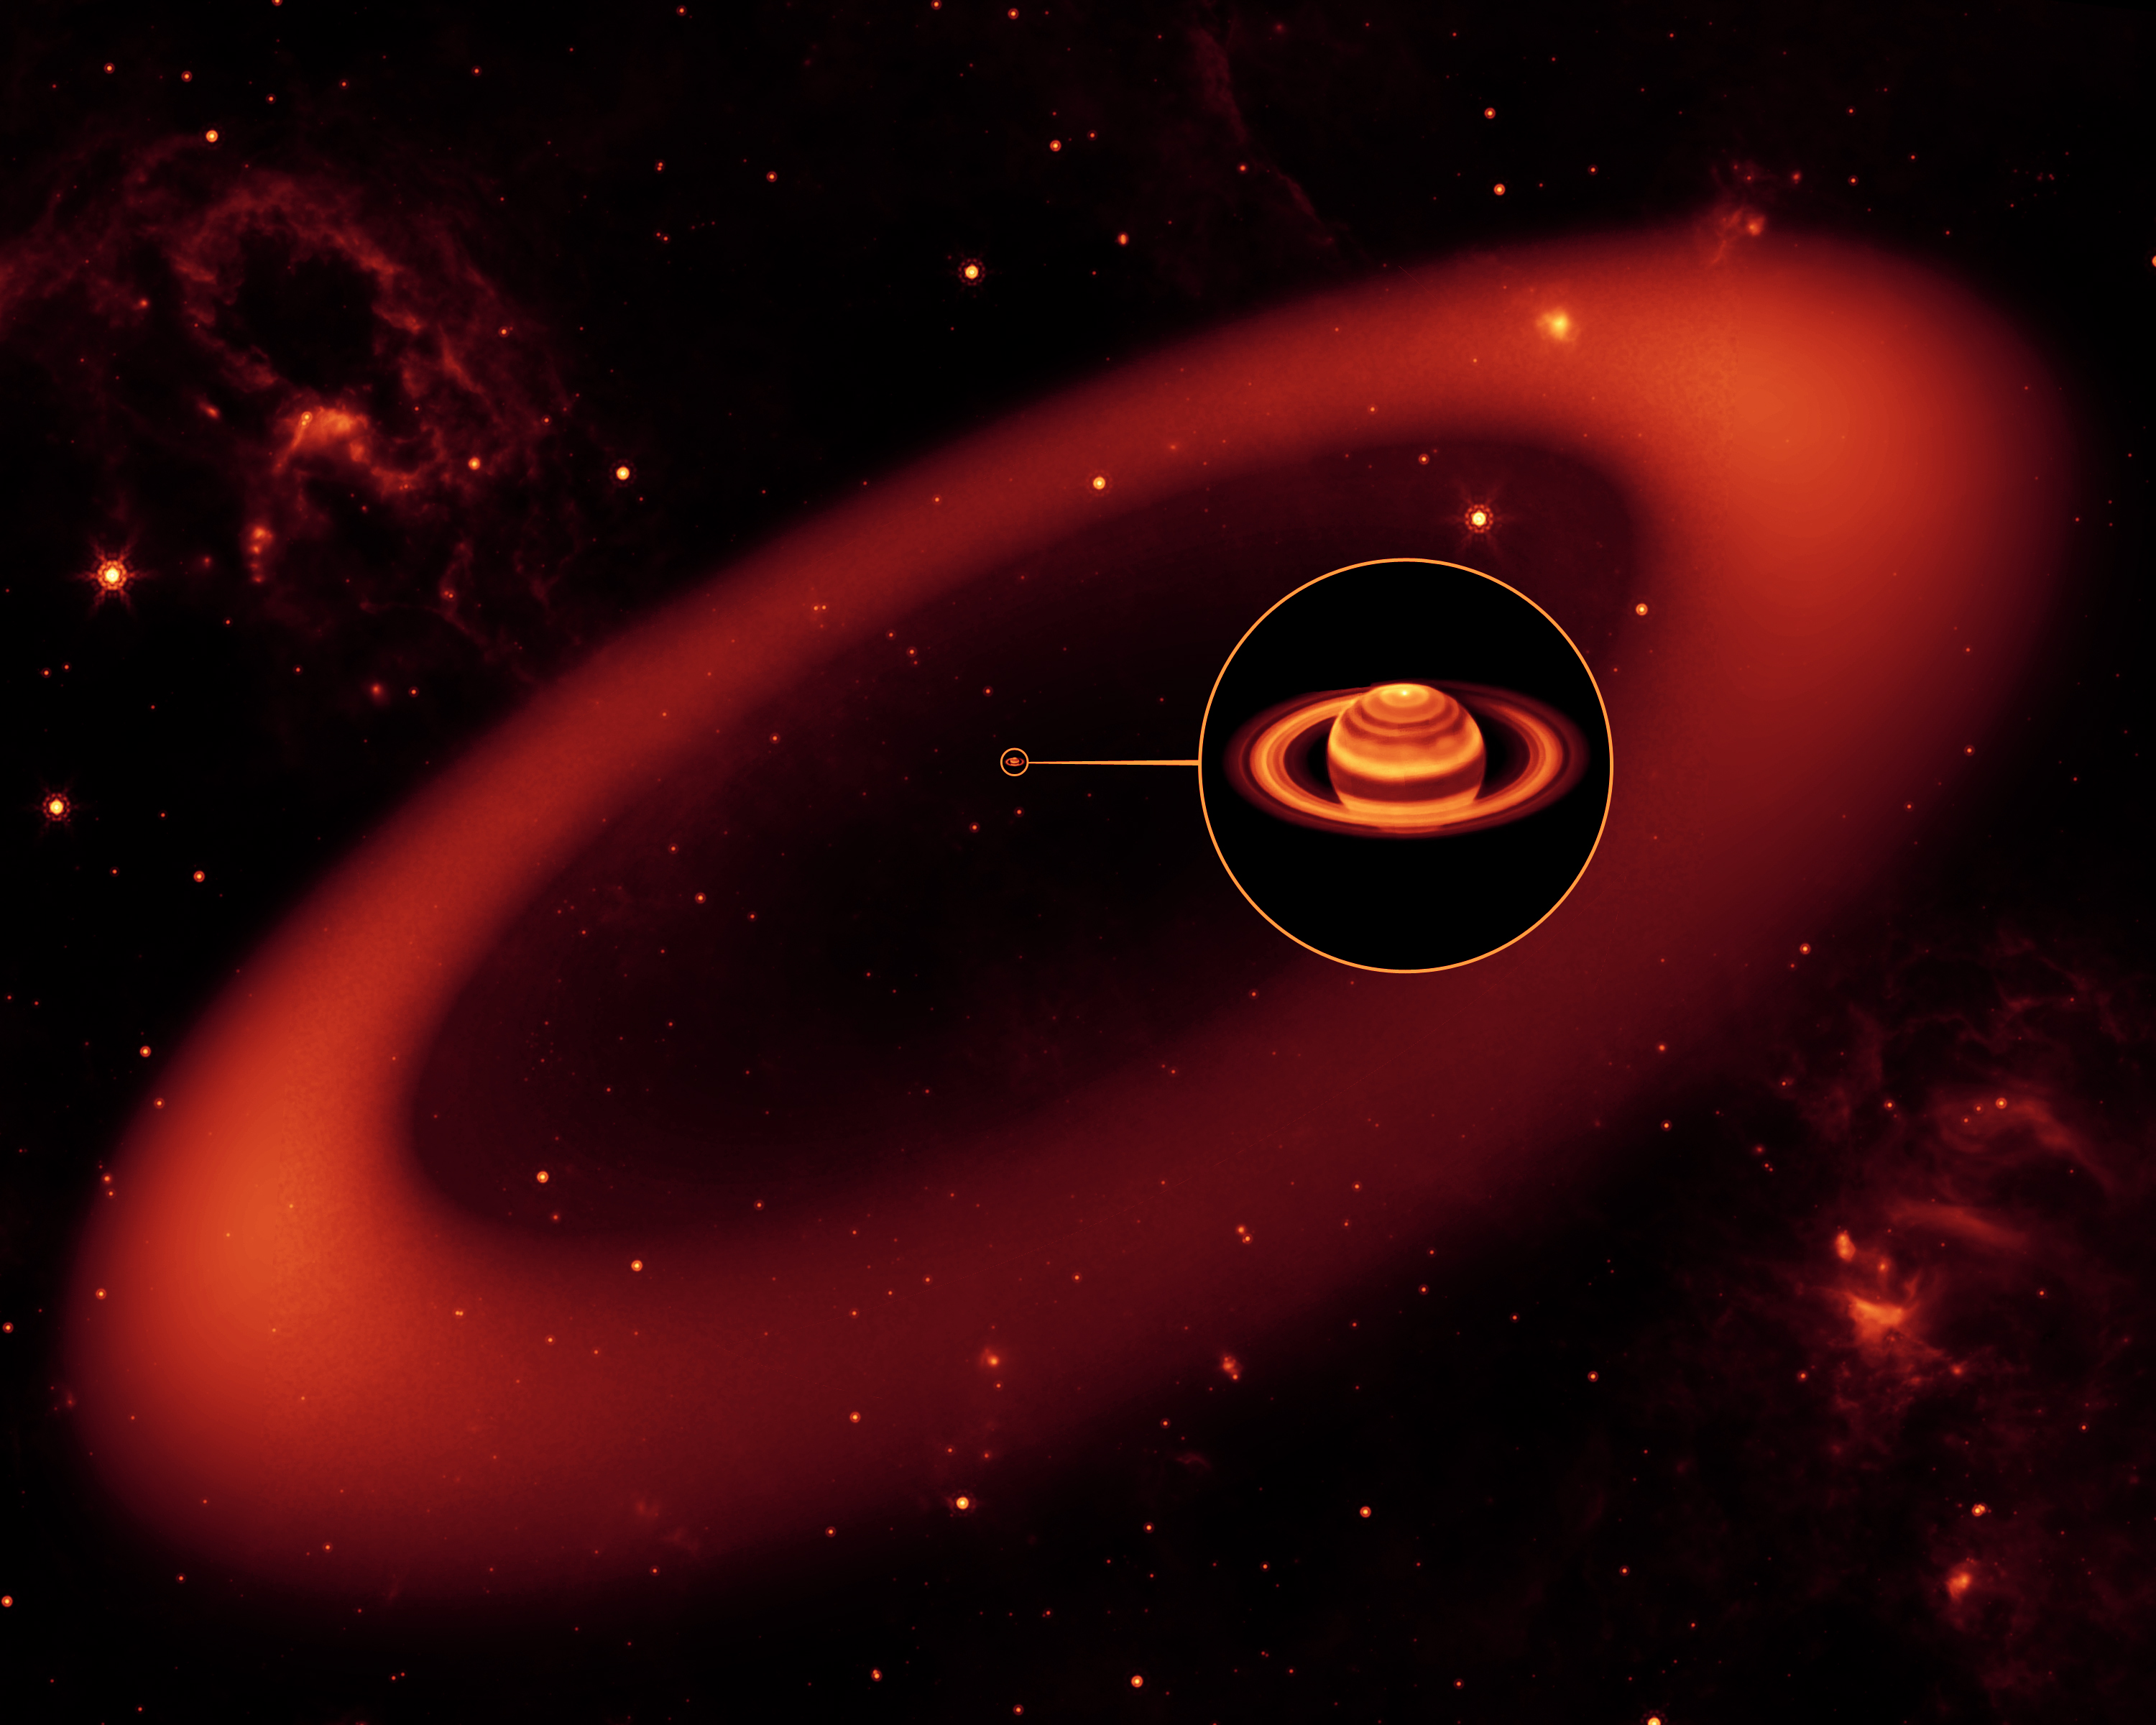 File:Saturn largest ring Spitzer telescope 20091006.jpg.